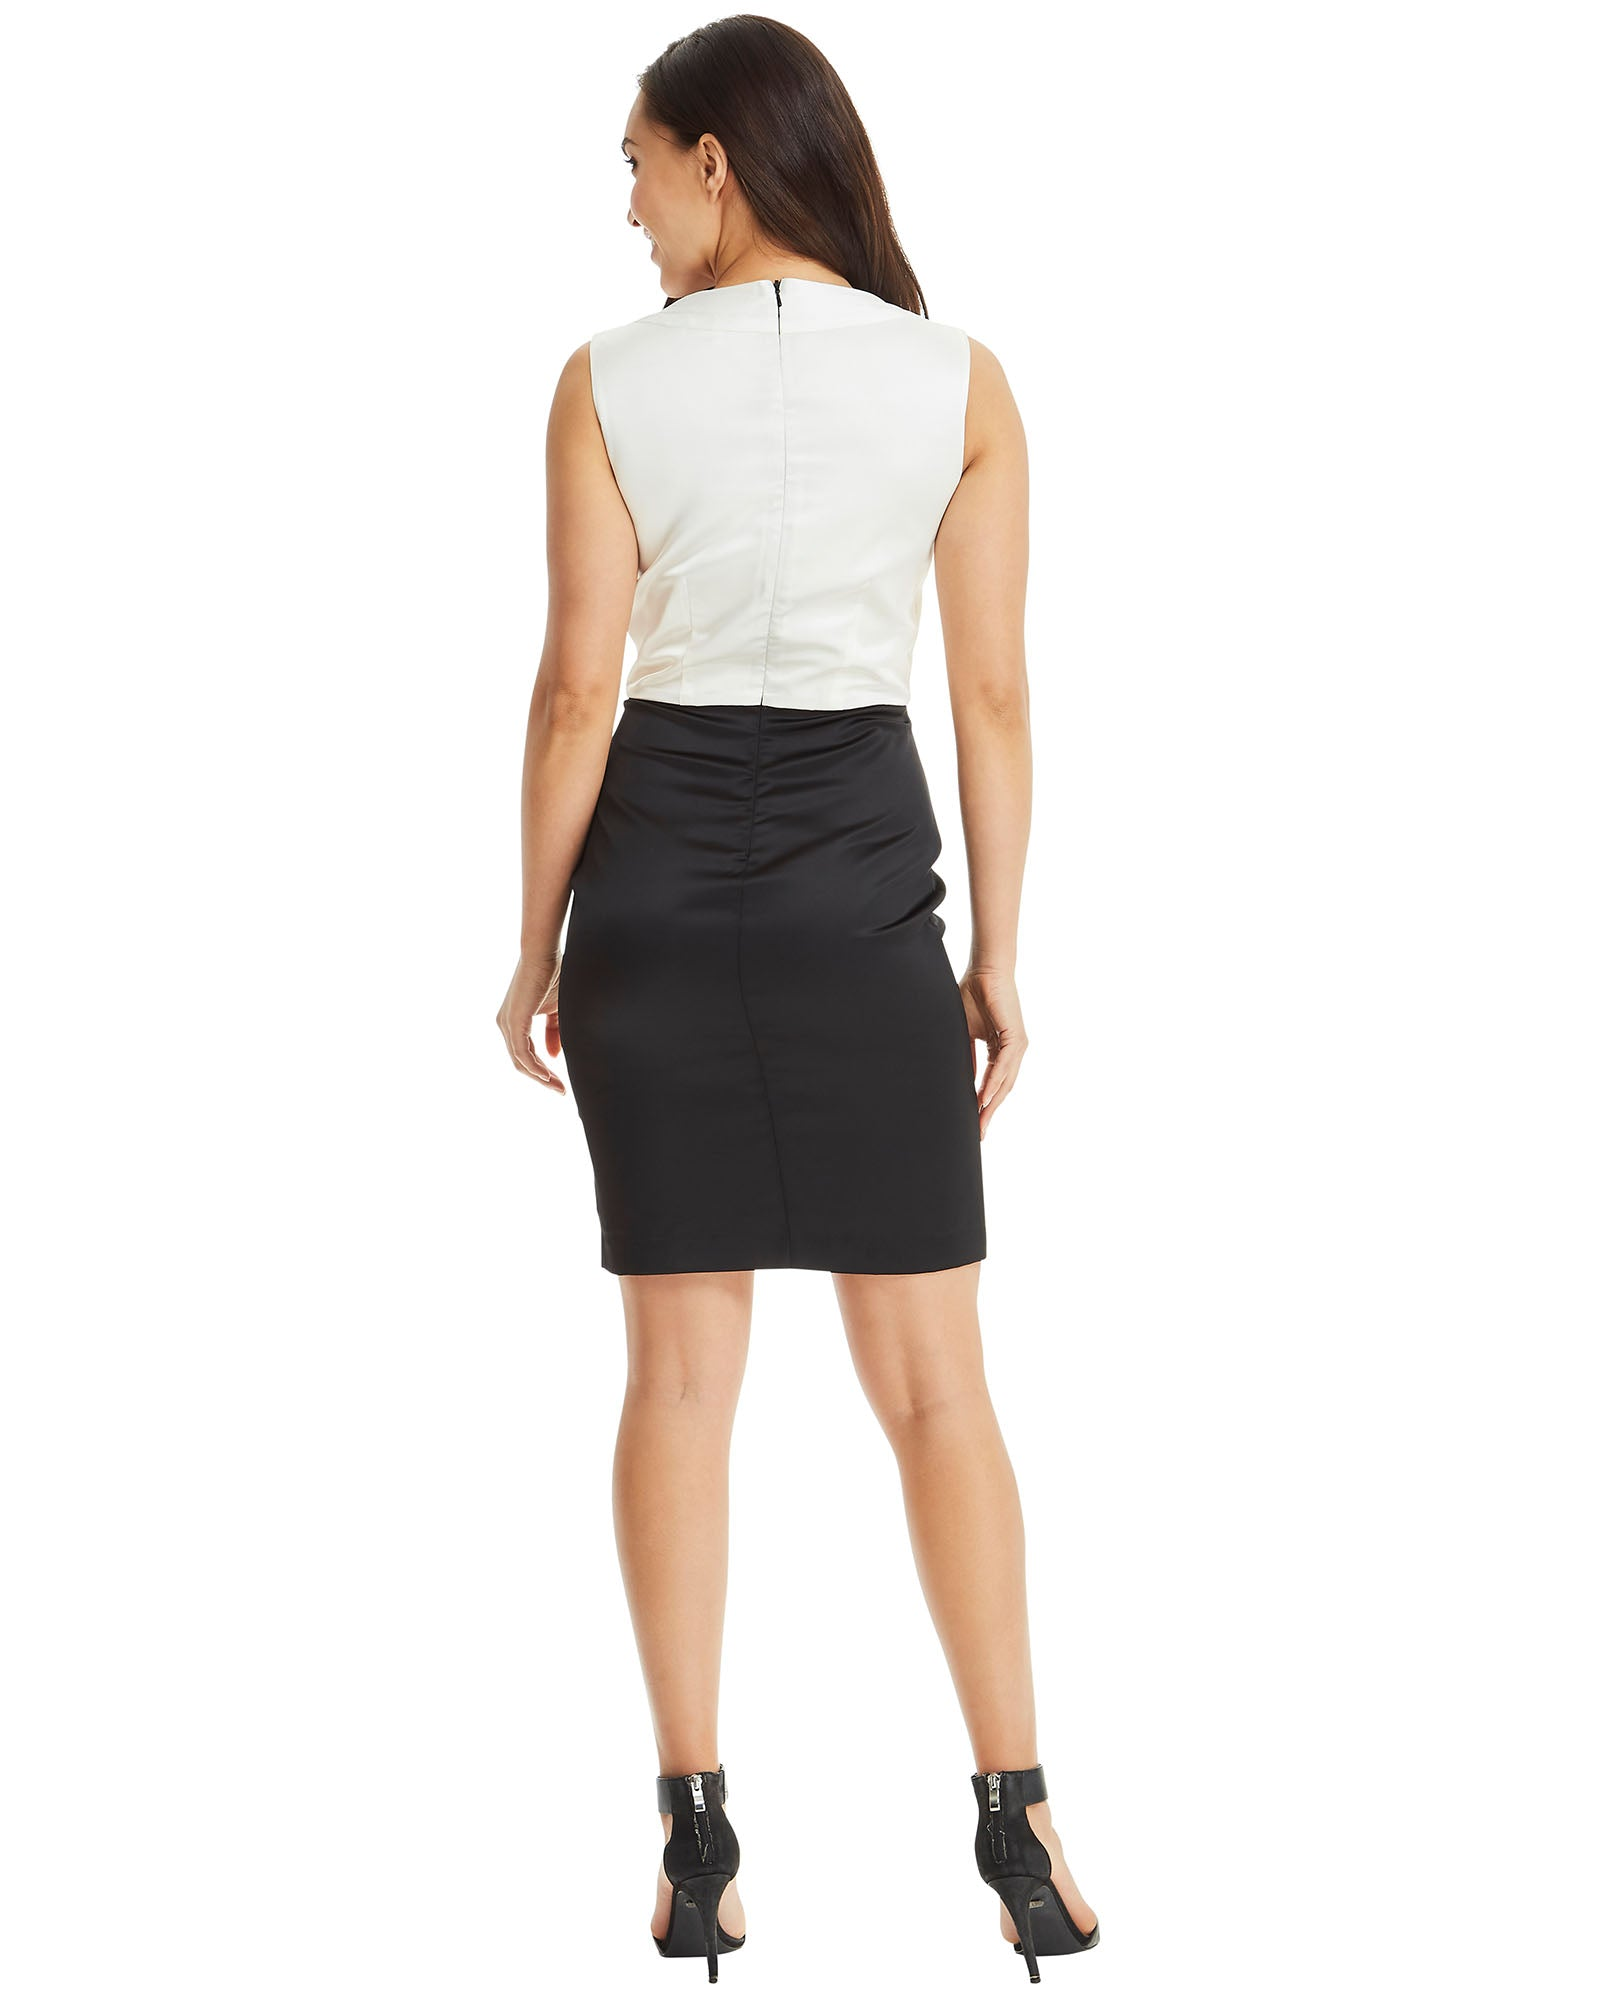 SKIVA cocktail dress black white v neck top folds shoulder straps zip knee length pencil skirt midi work party cocktail evening